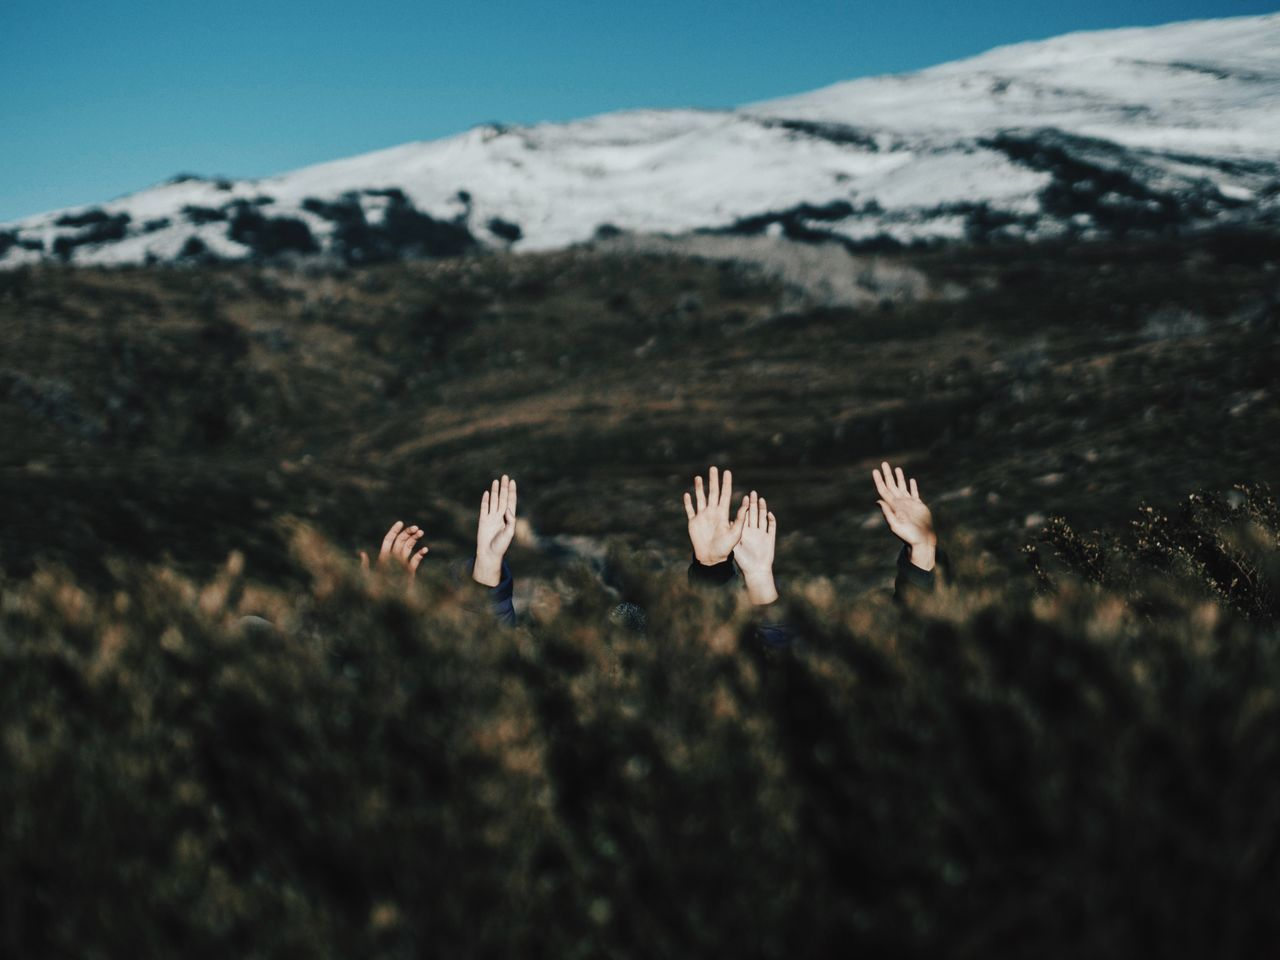 Hands Coming Out From Field Against Snowcapped Mountains